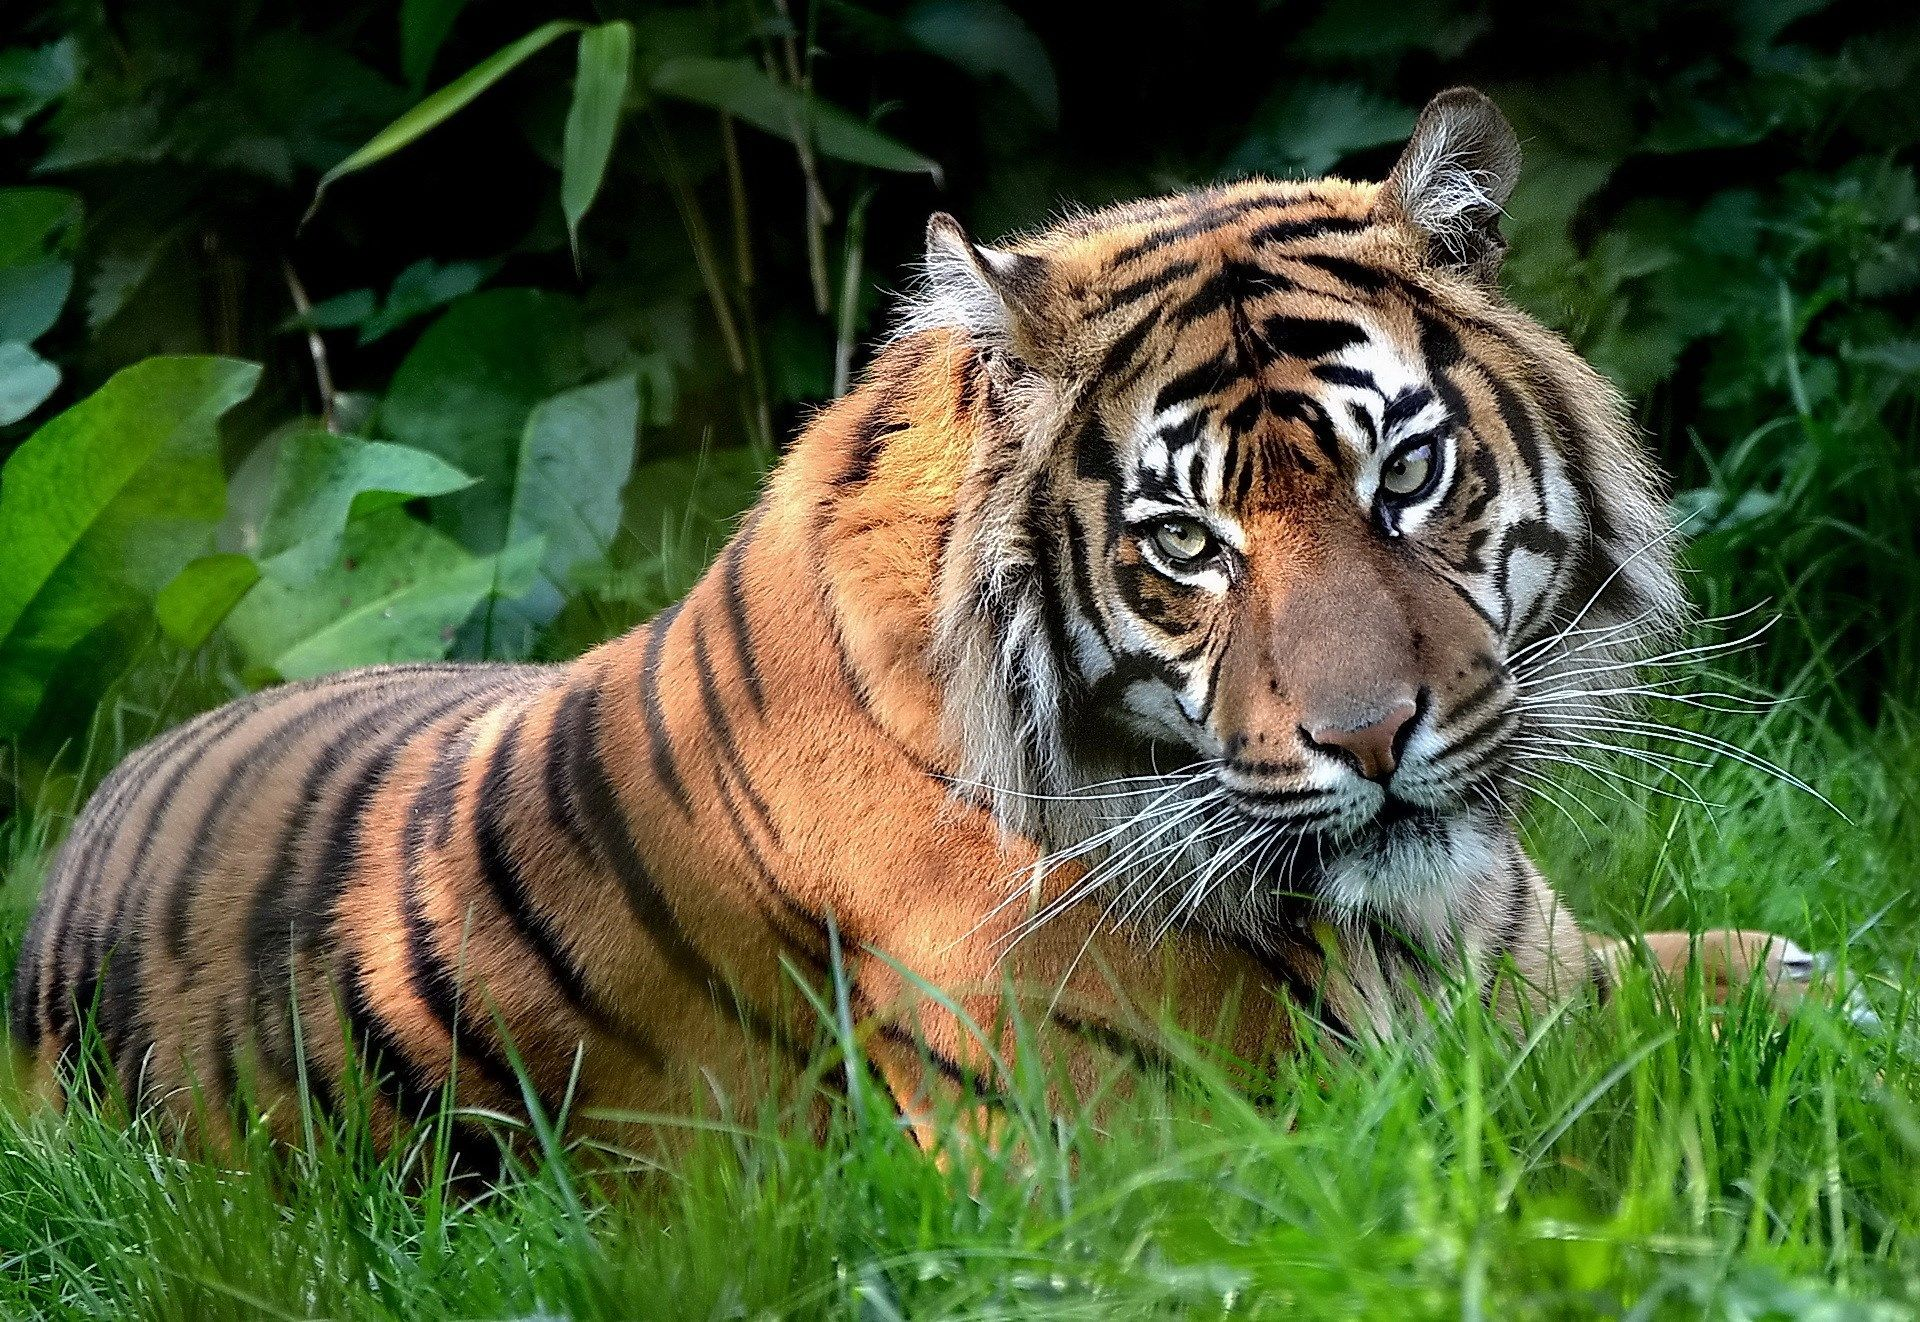 1417589, high resolution wallpapers = tiger picture | ololoshenka